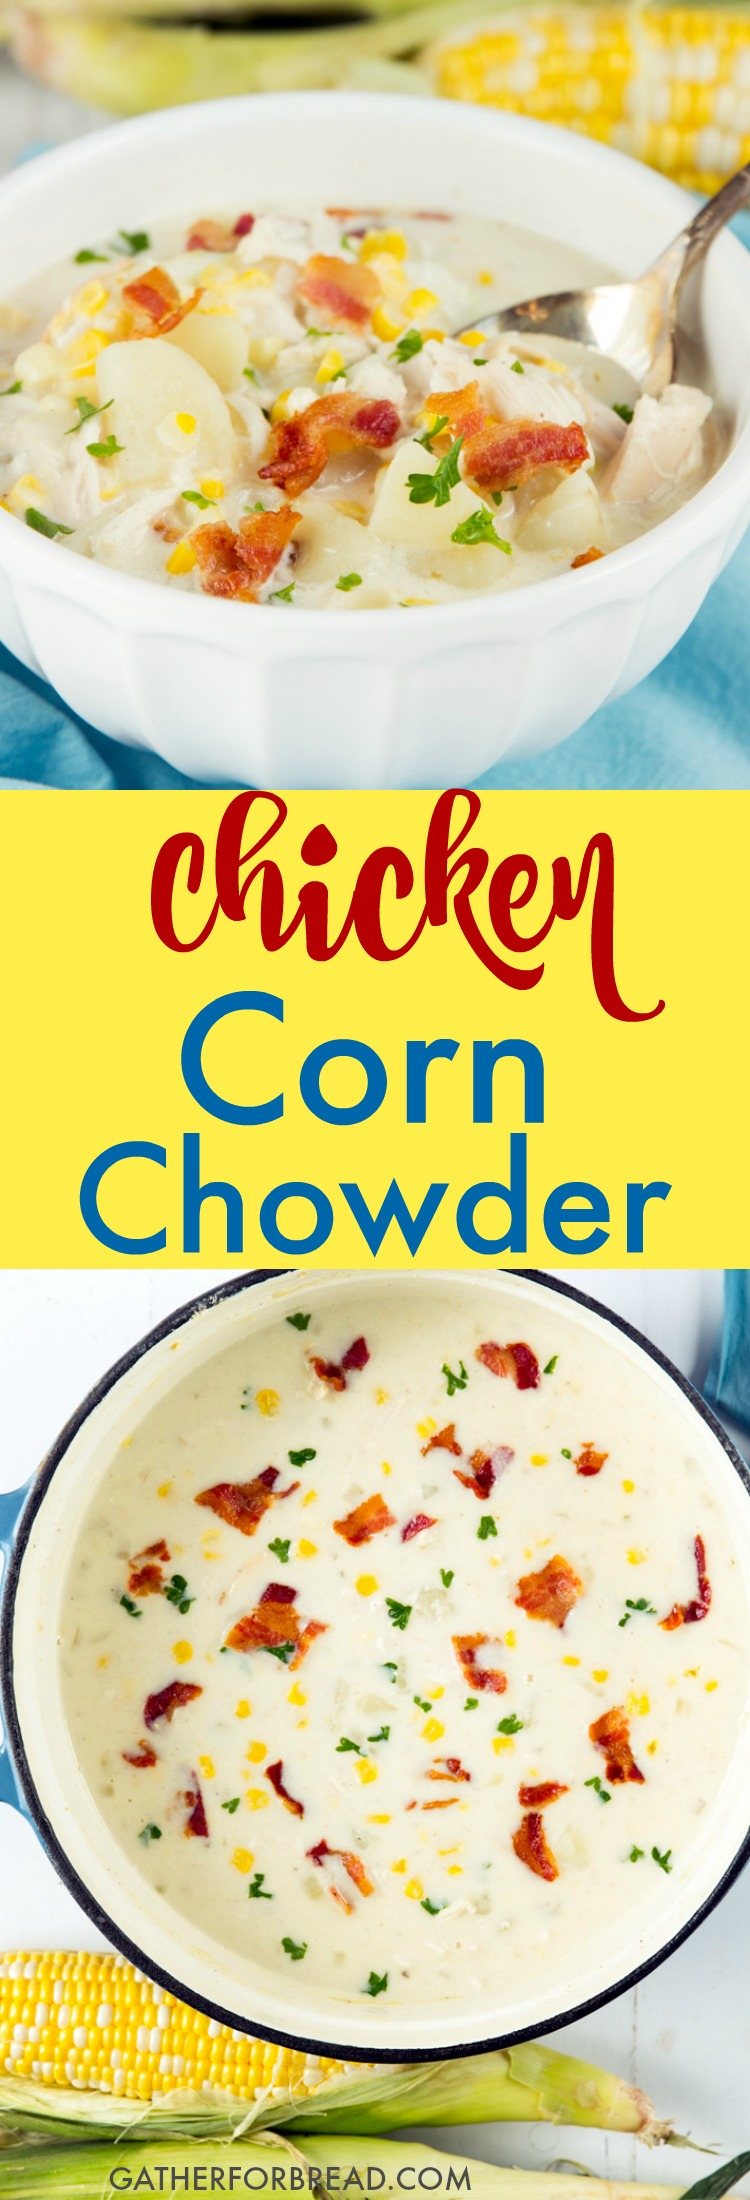 Chicken Corn Chowder - Creamy corn chowder loaded with bacon, sweet fresh corn, rotisserie chicken, loaded with flavor, this is sure to be a hit with your crowd especially in the summer. // gatherforbread.com